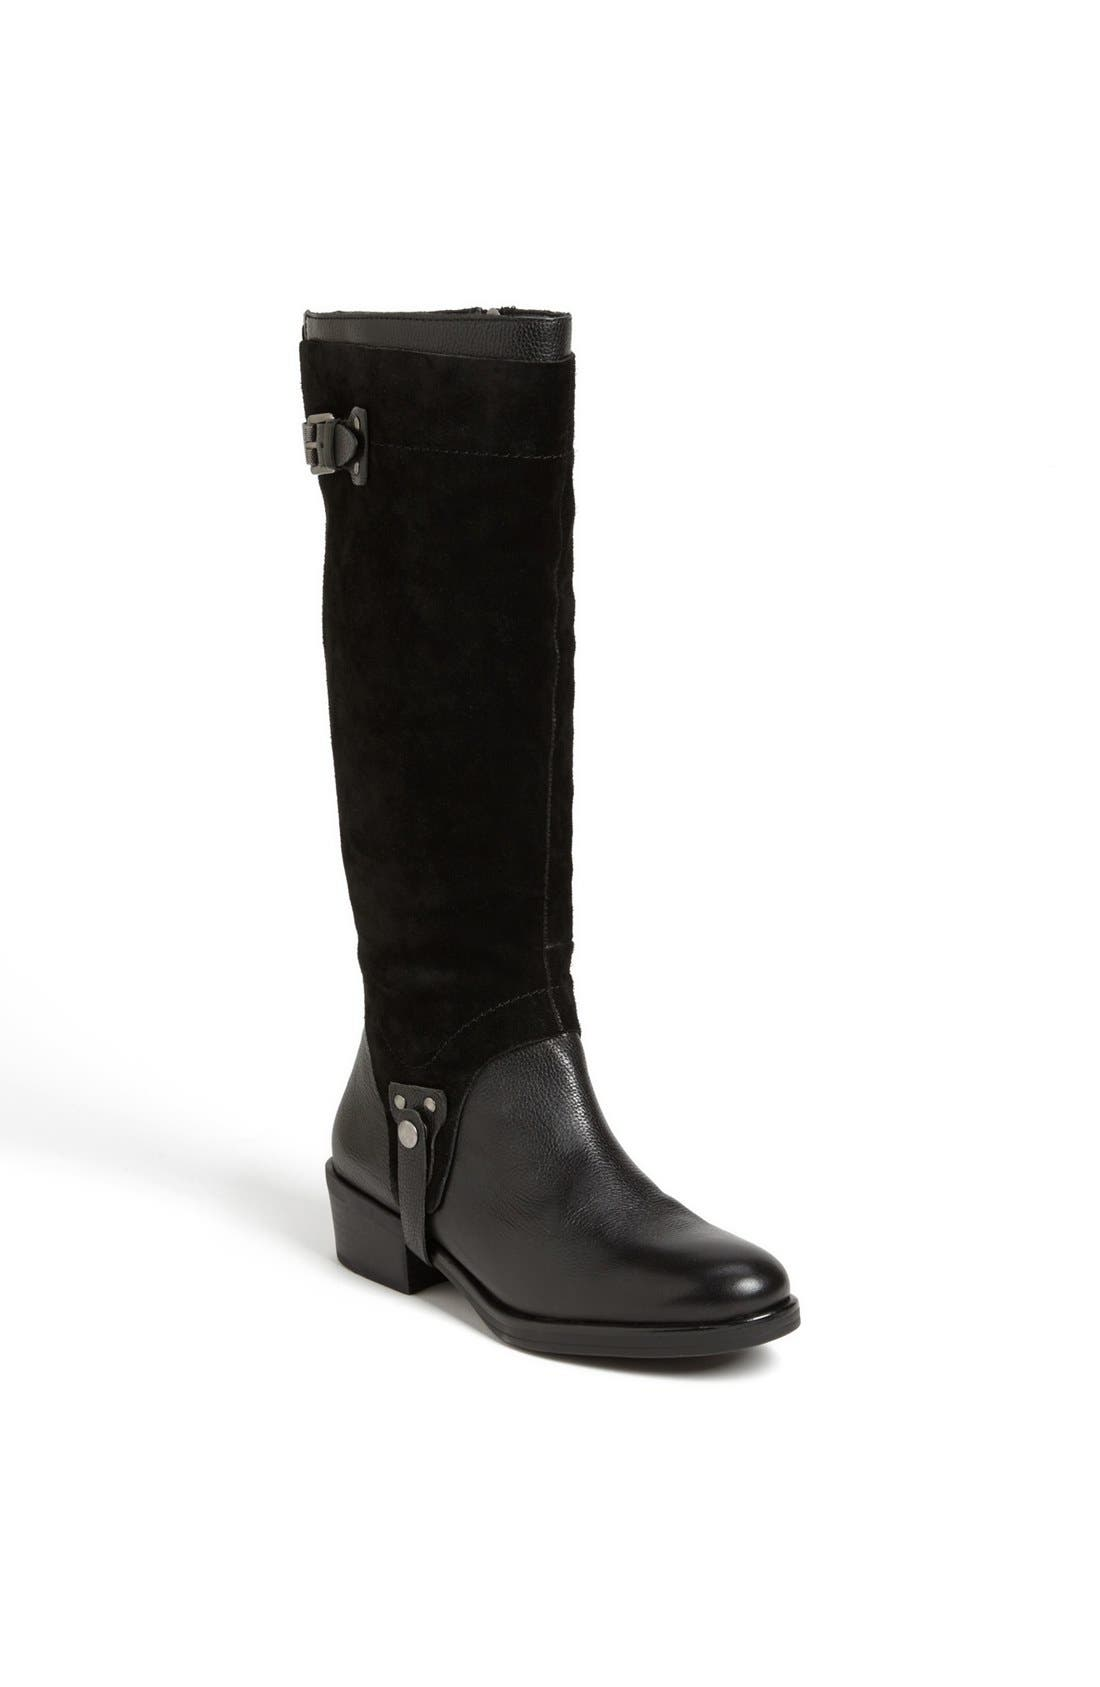 Alternate Image 1 Selected - Franco Sarto 'Bevel' Boot